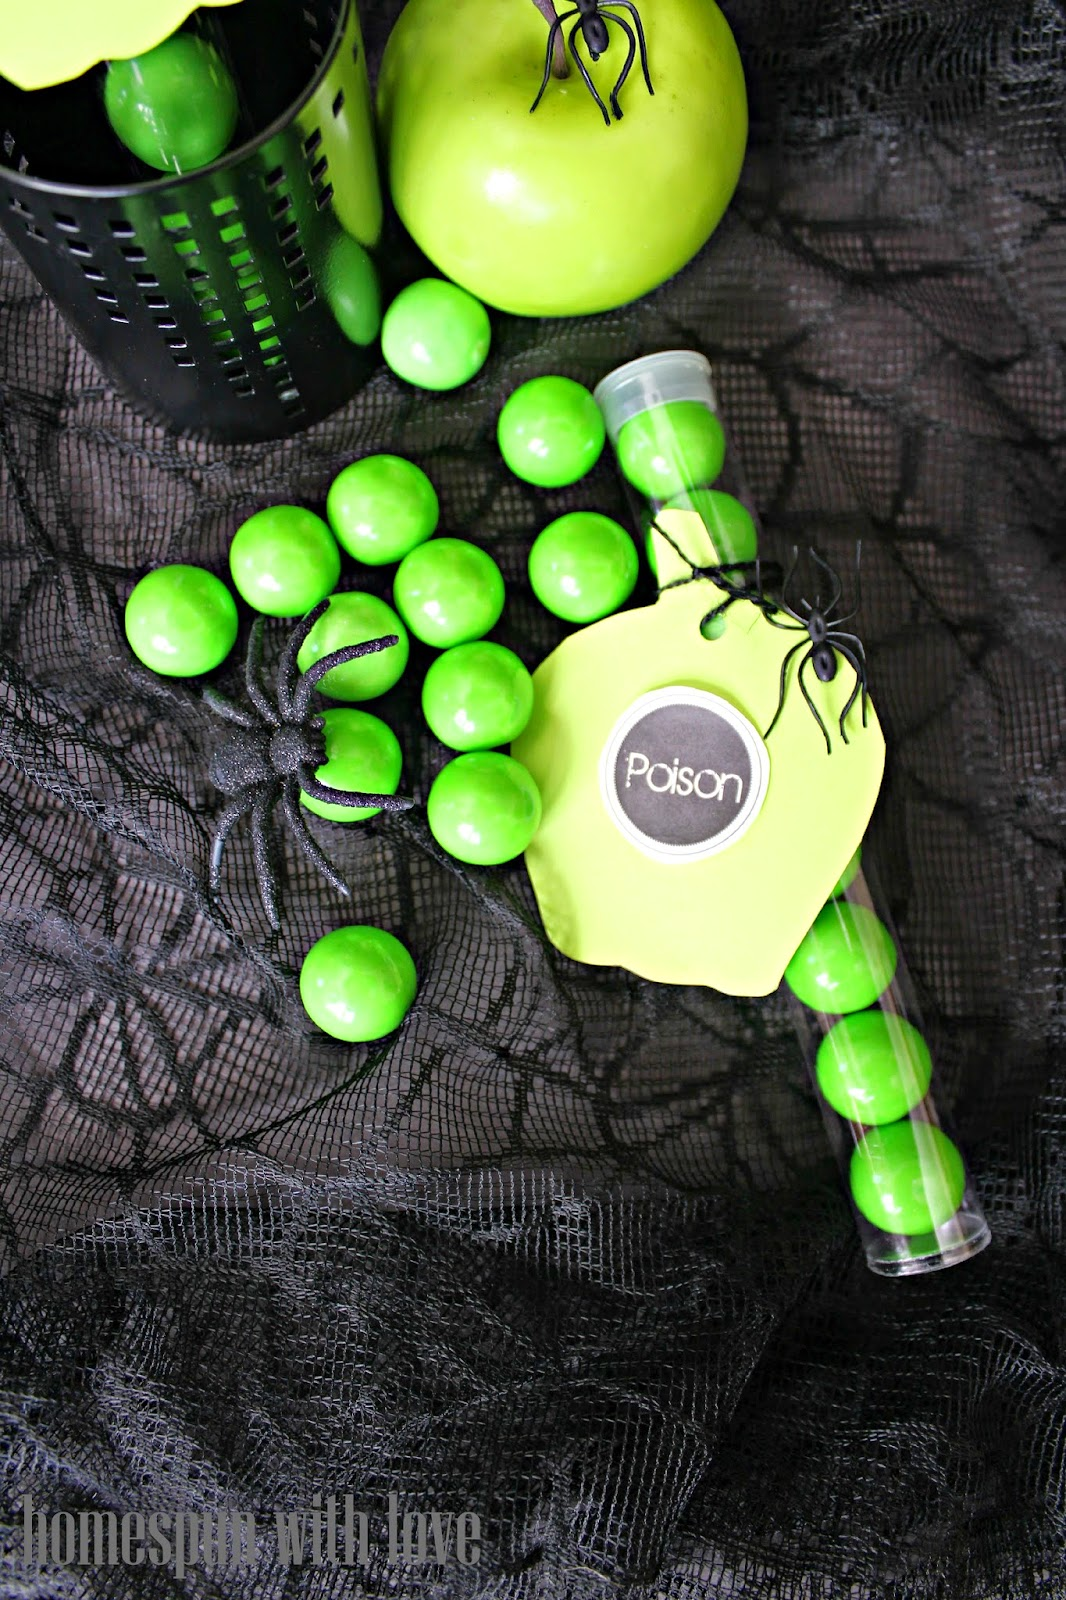 Homespun With Love: Spooky & Easy Poison Apple Favors